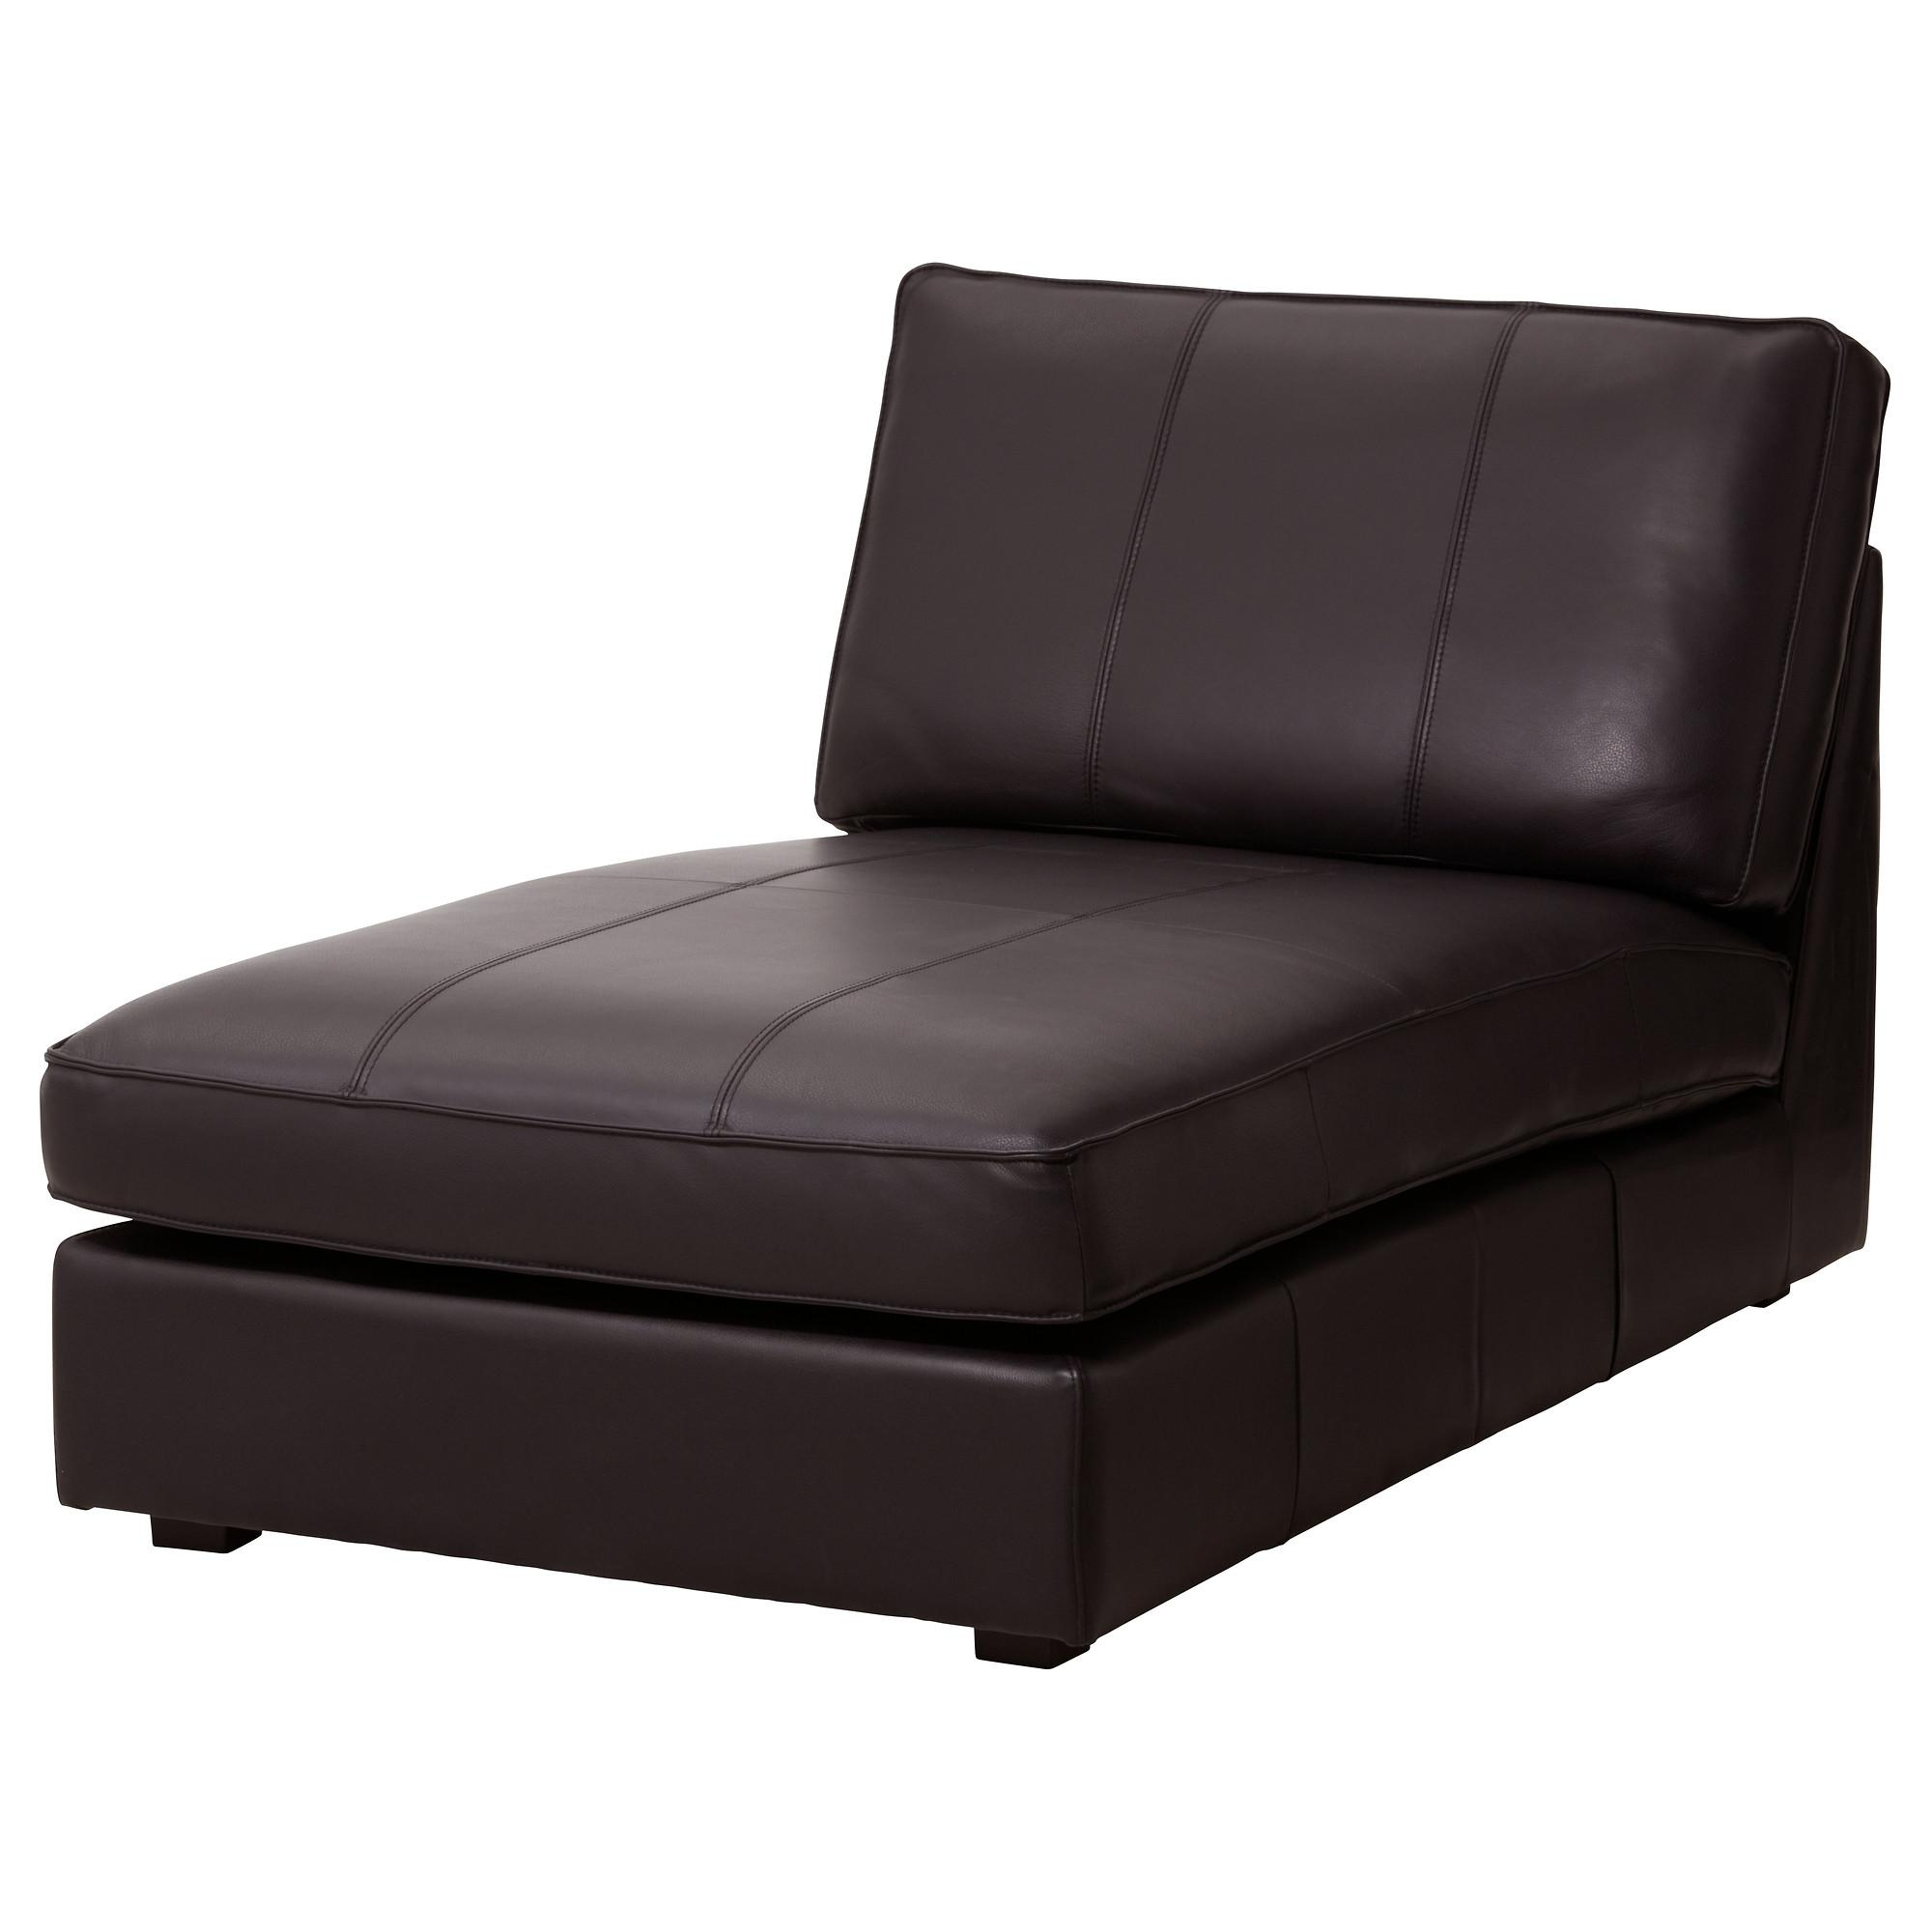 20 photos ikea chaise lounge sofa sofa ideas. Black Bedroom Furniture Sets. Home Design Ideas